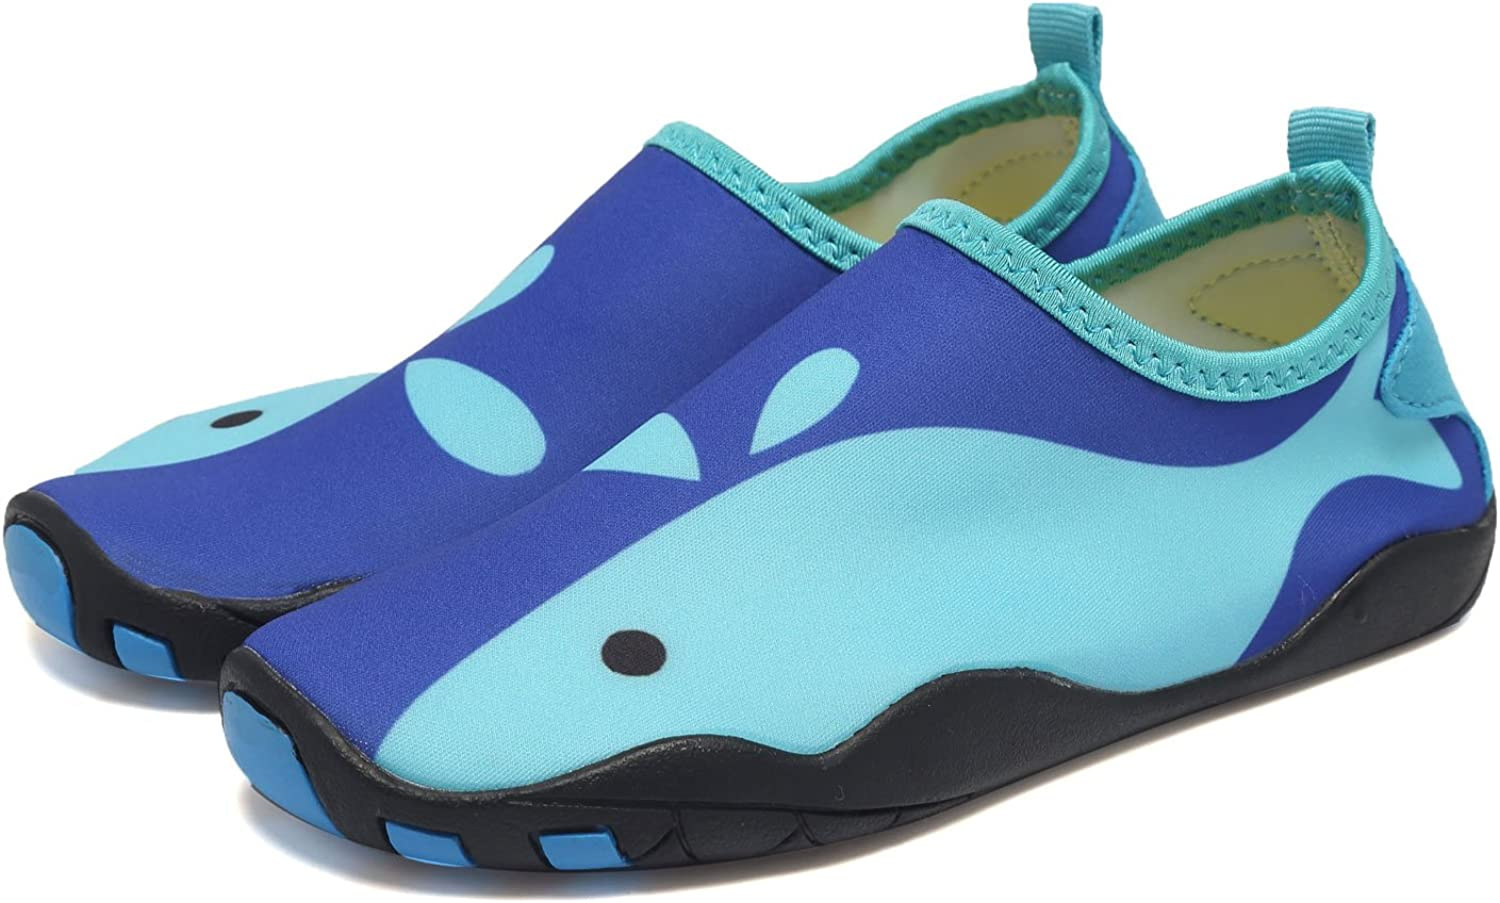 CIOR Kids Water Shoes Quick-Dry Boys and Girls Slip-on Aqua Beach Sneakers Toddler//Little Kid//Big Kid